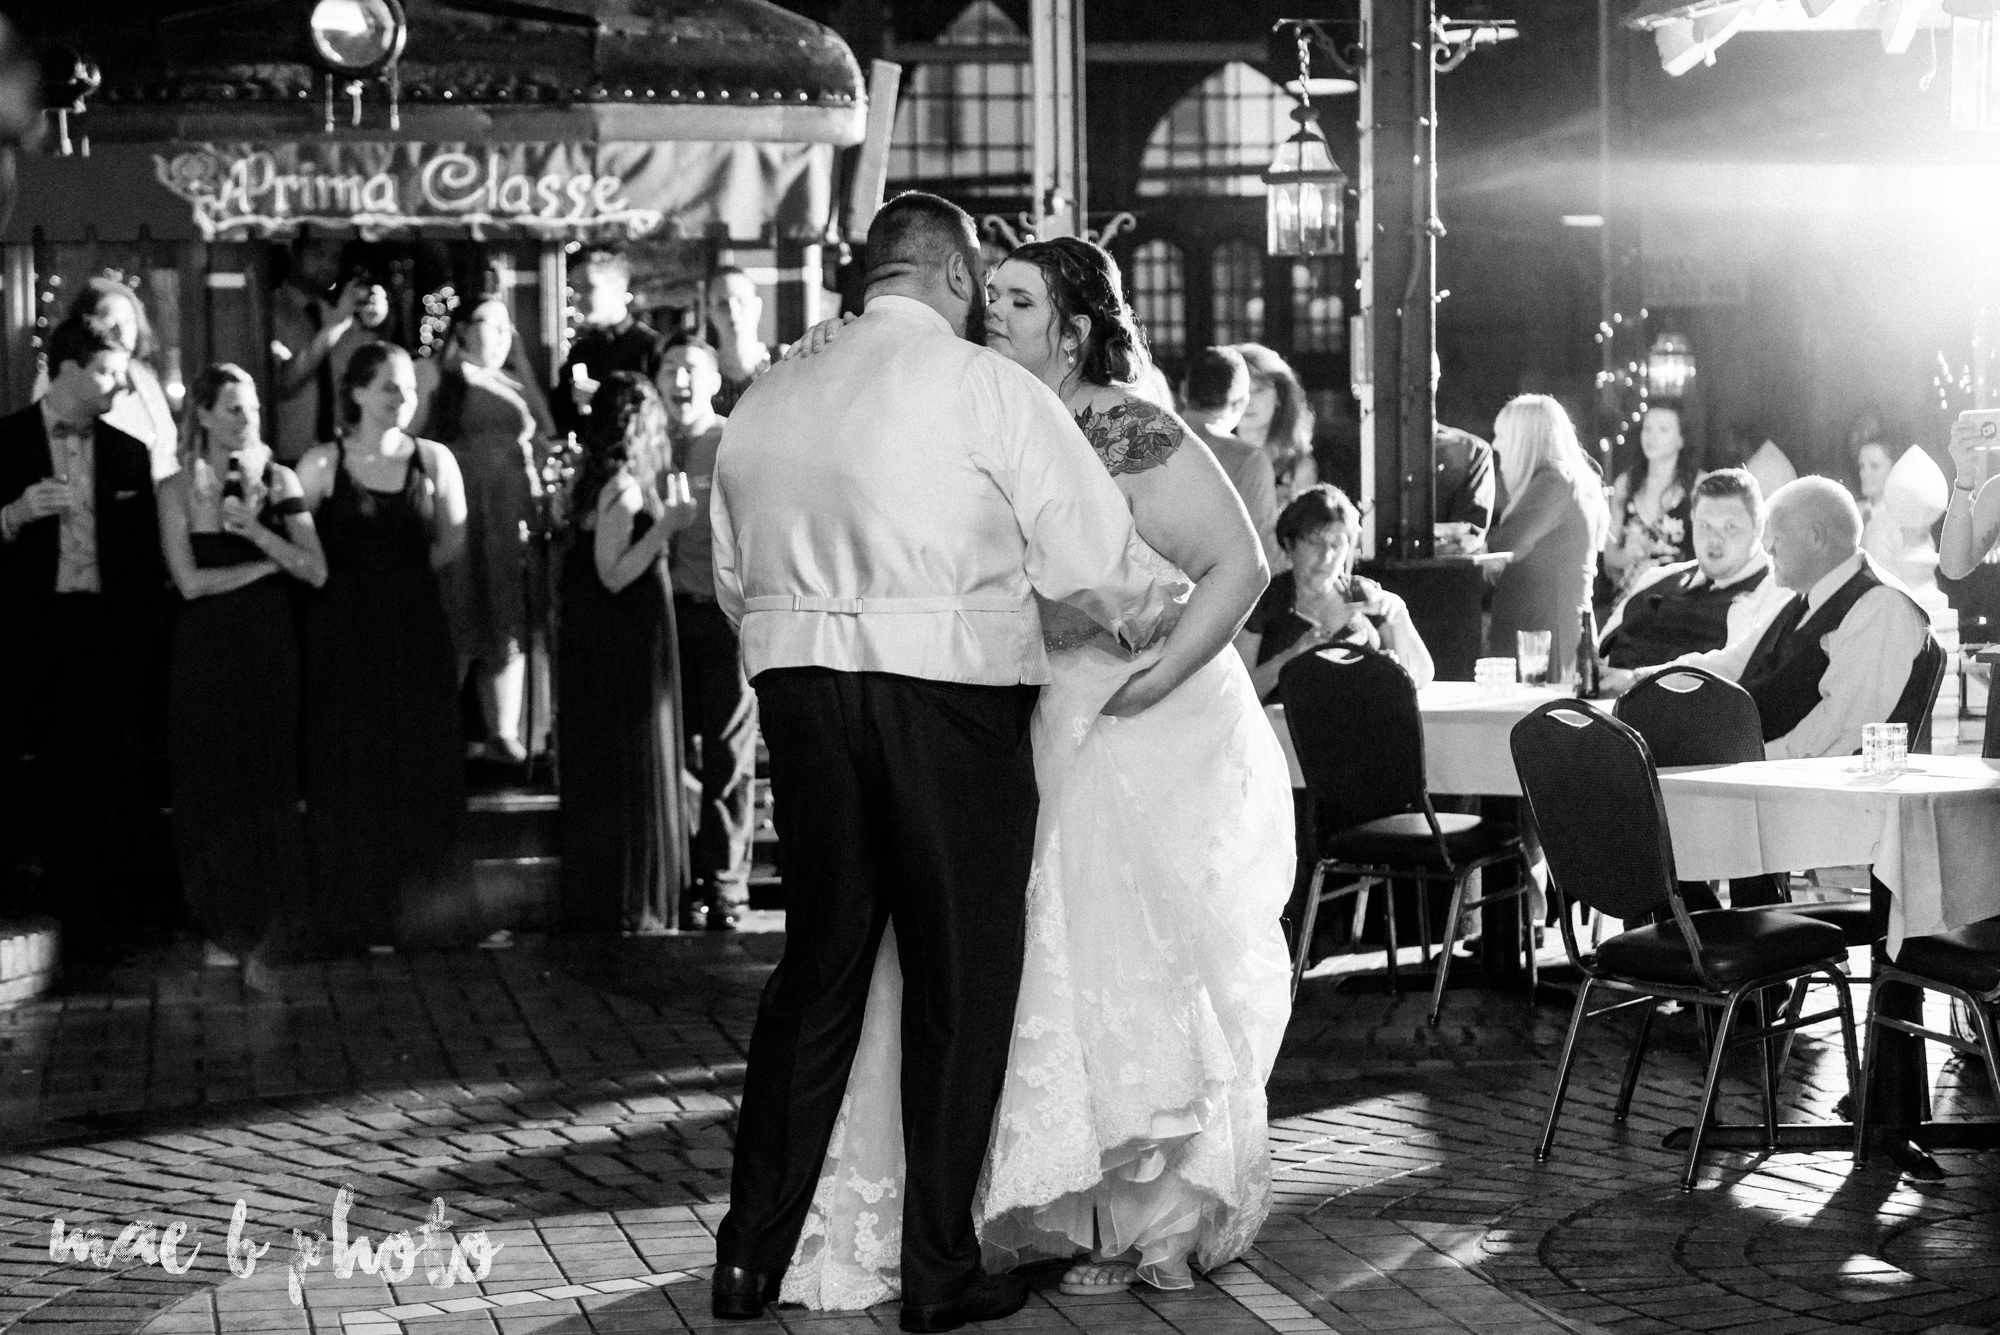 Kristina and ryan's personal vintage glam fall wedding at disalvo's station restaurant and the arnold palmer latrobe country club in latrobe, pa photographed by youngstown wedding photographer mae b photo-78.jpg